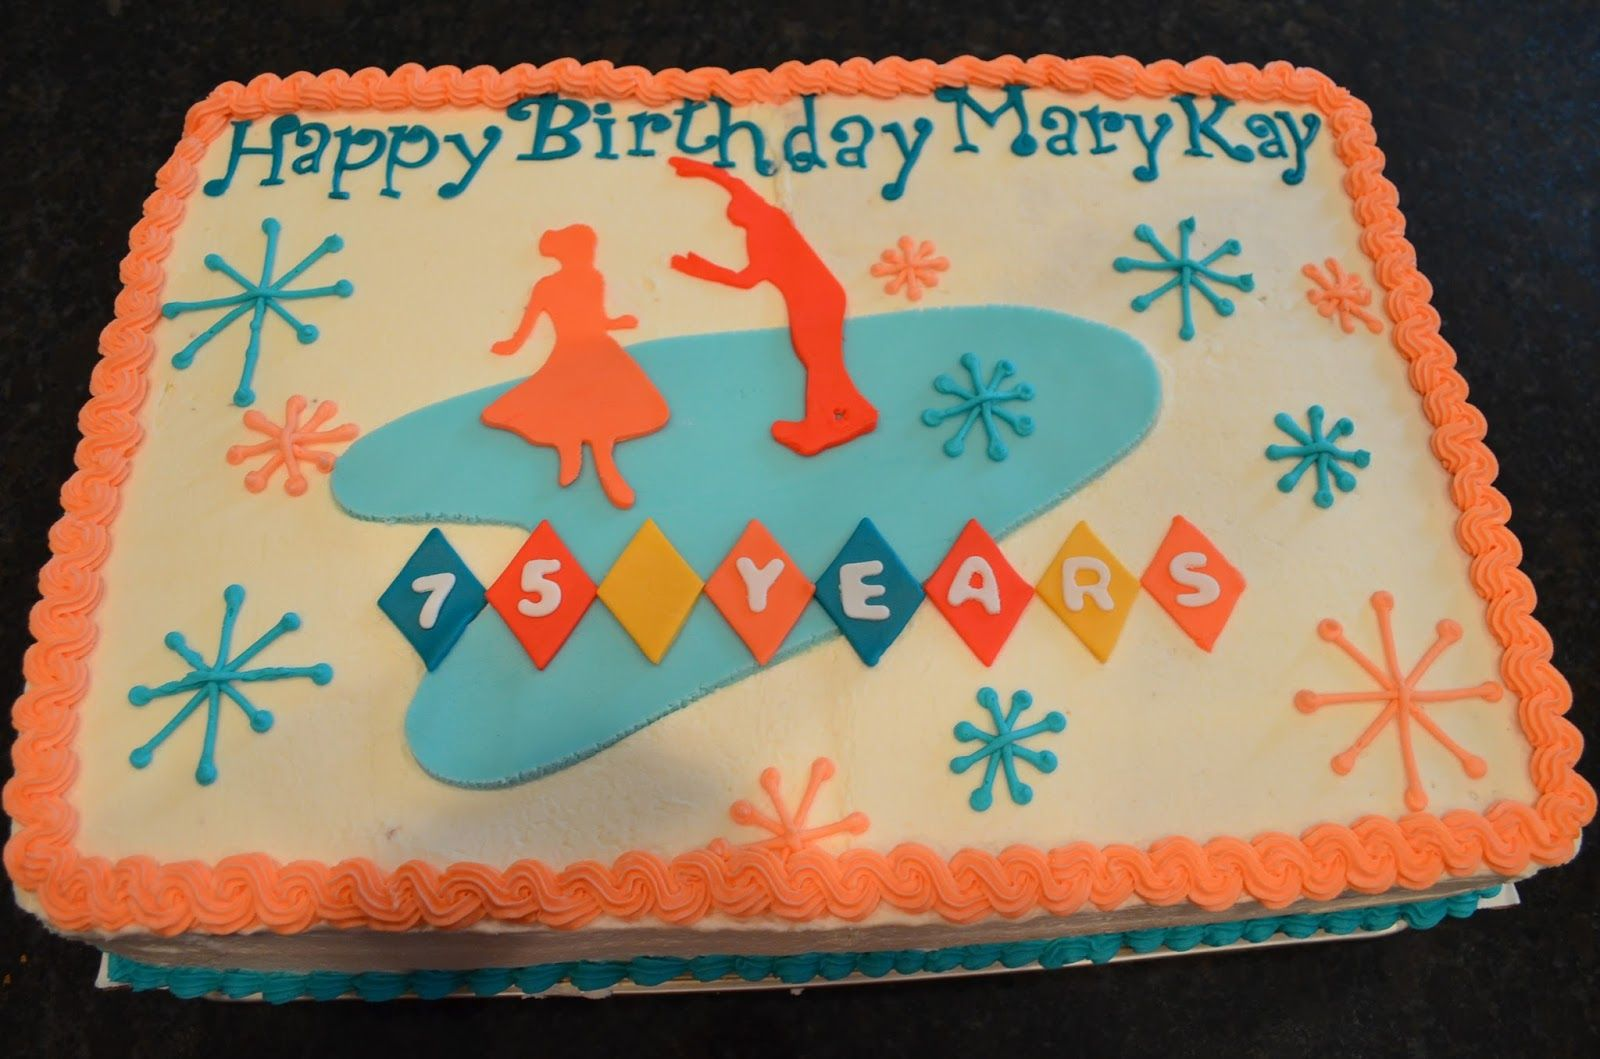 Cake Mama: Mary Kay's 75th Birthday Sock Hop